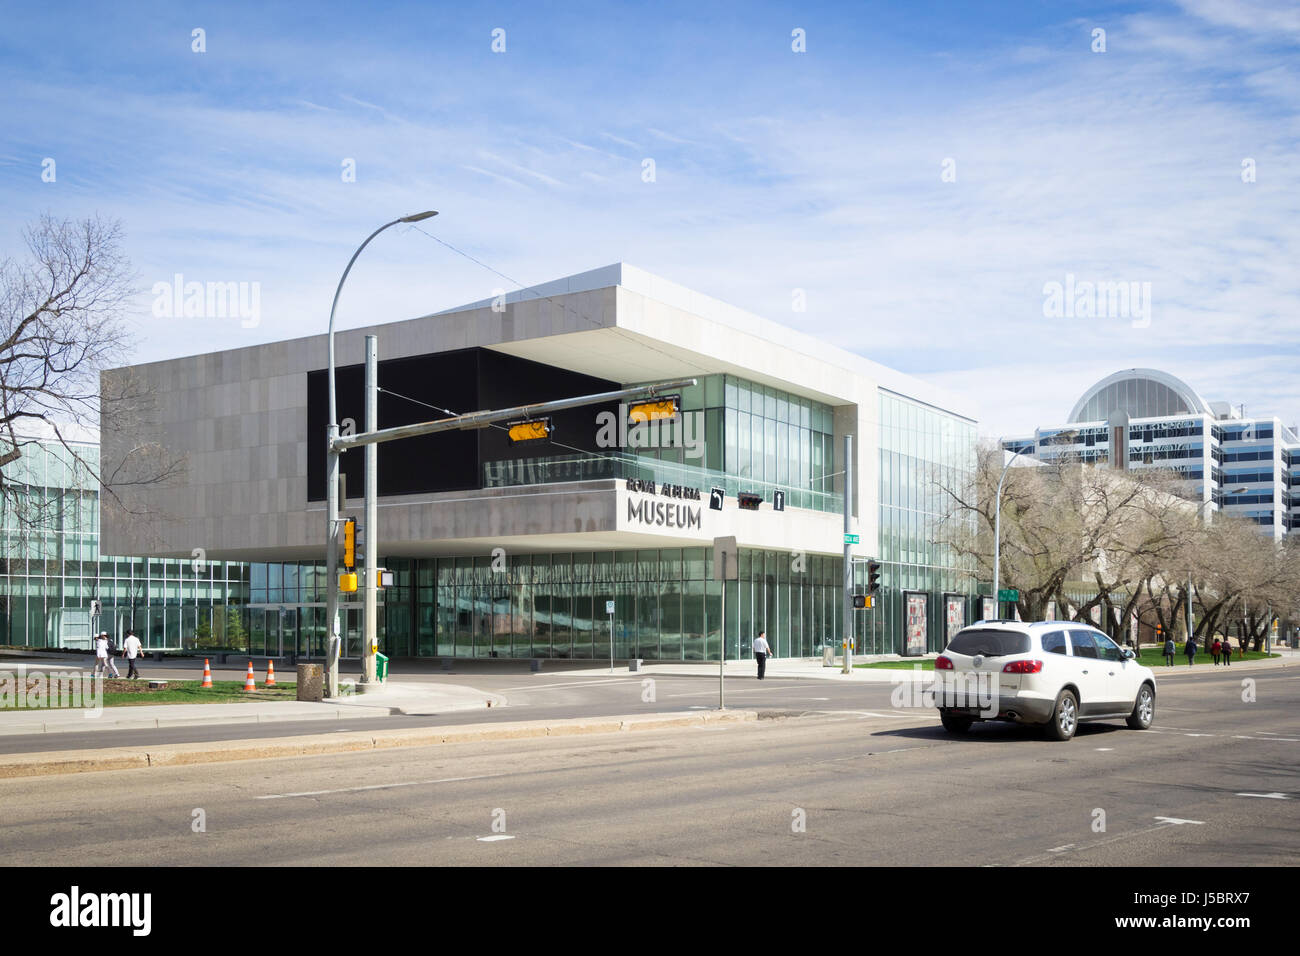 A view of the exterior of the new Royal Alberta Museum in Edmonton, Alberta, Canada. - Stock Image